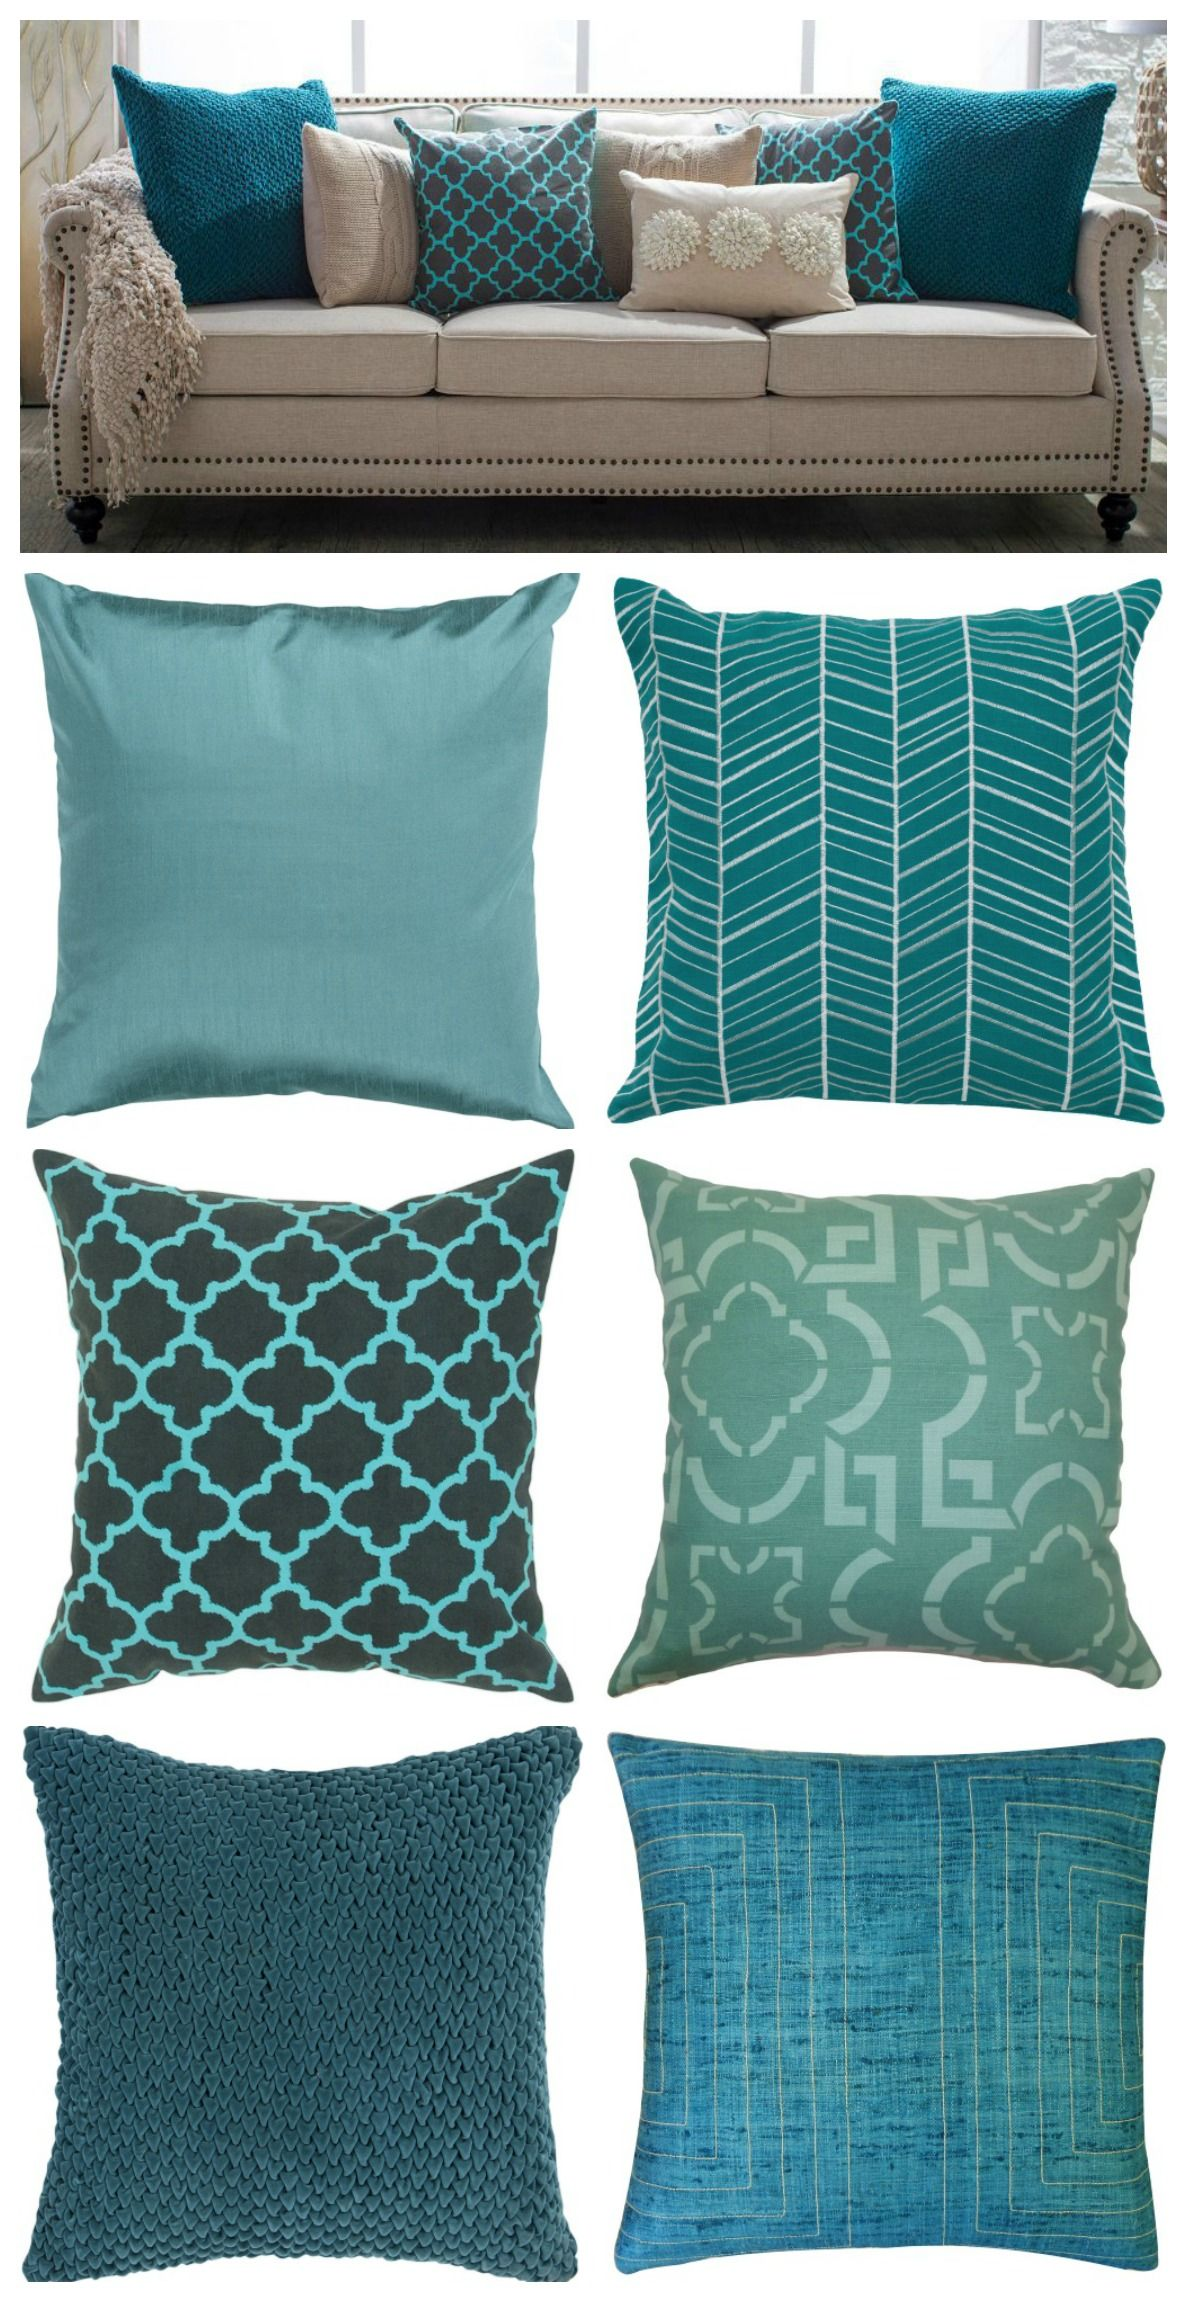 Teal pillows. | Home Decor | Living room decor pillows ...